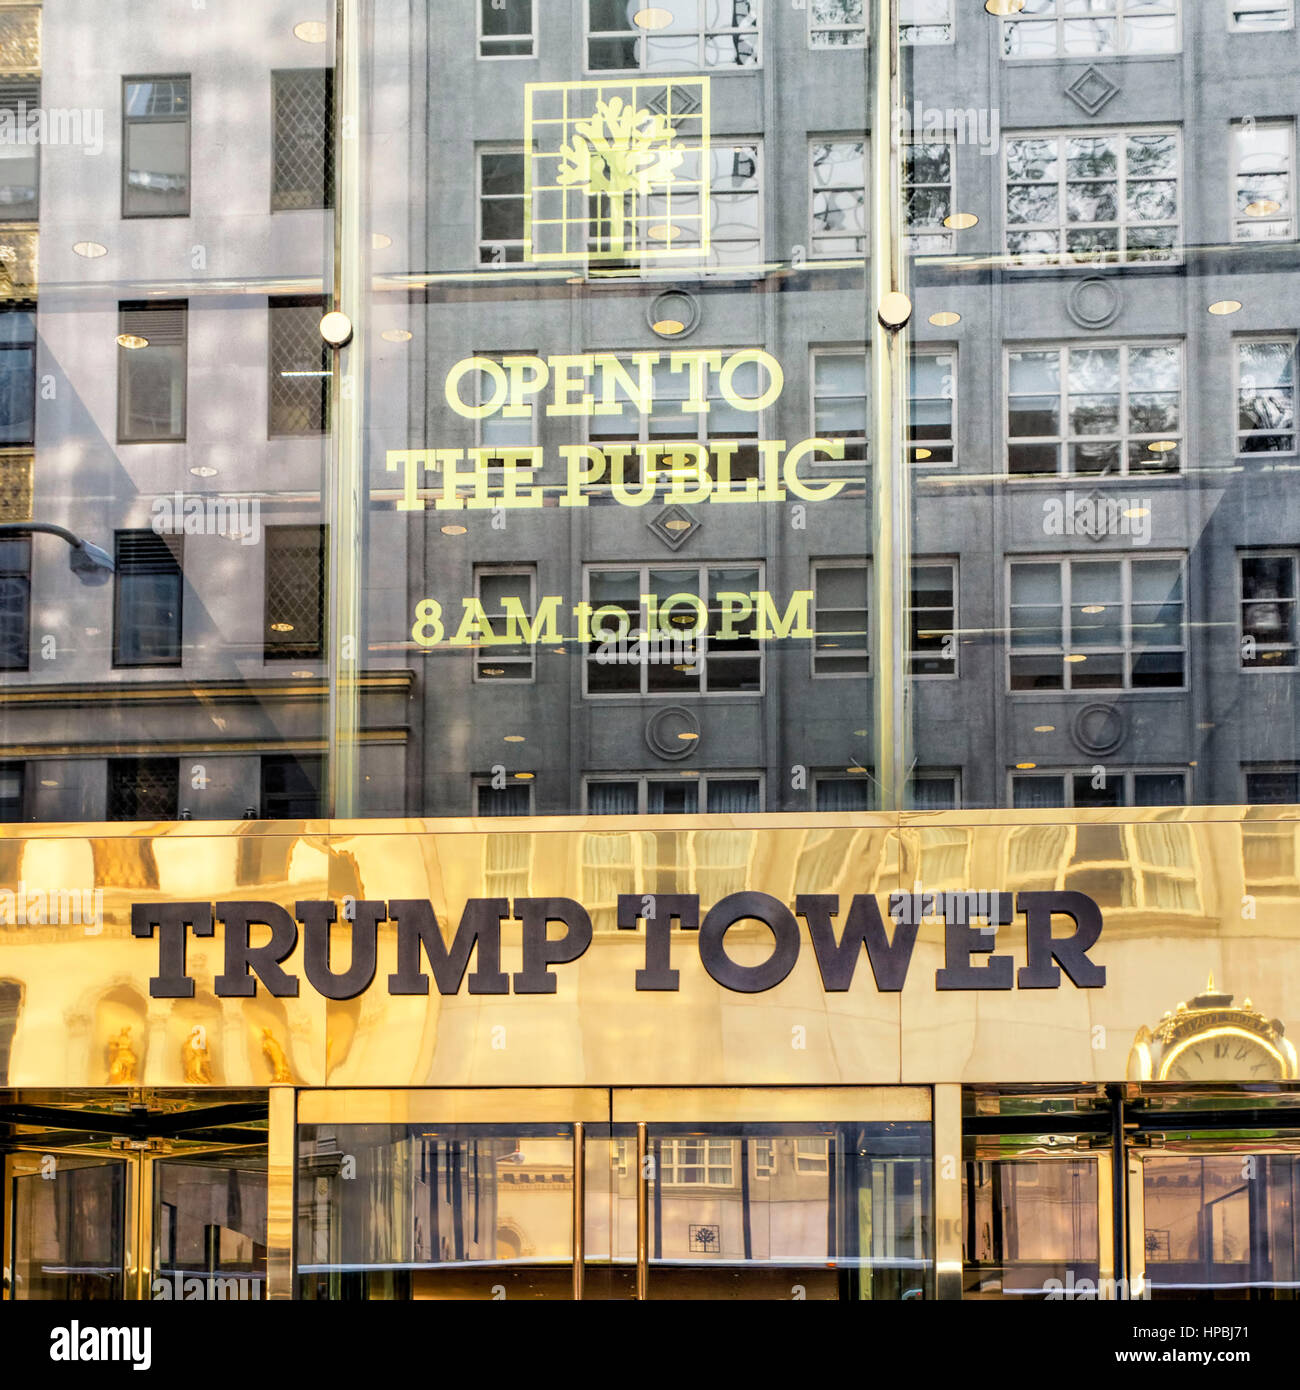 Trump Tower, golden entrance sign, fith avenue, Donald Trump, New York City, United States of America Stock Photo